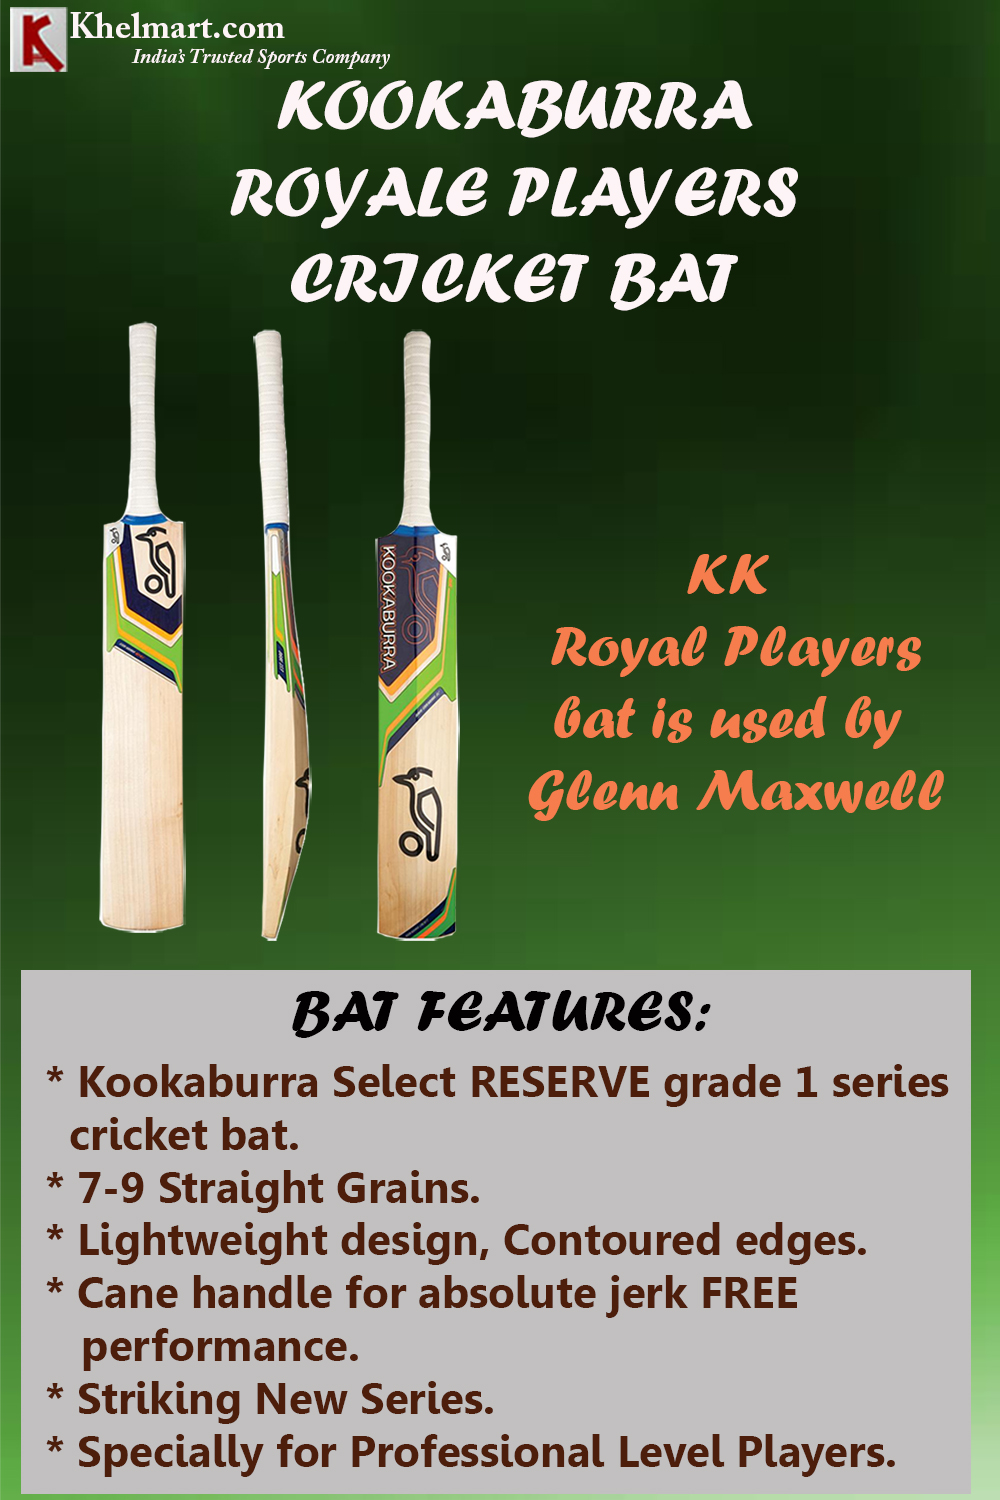 KOOKABURRA ROYALE PLAYERS_3